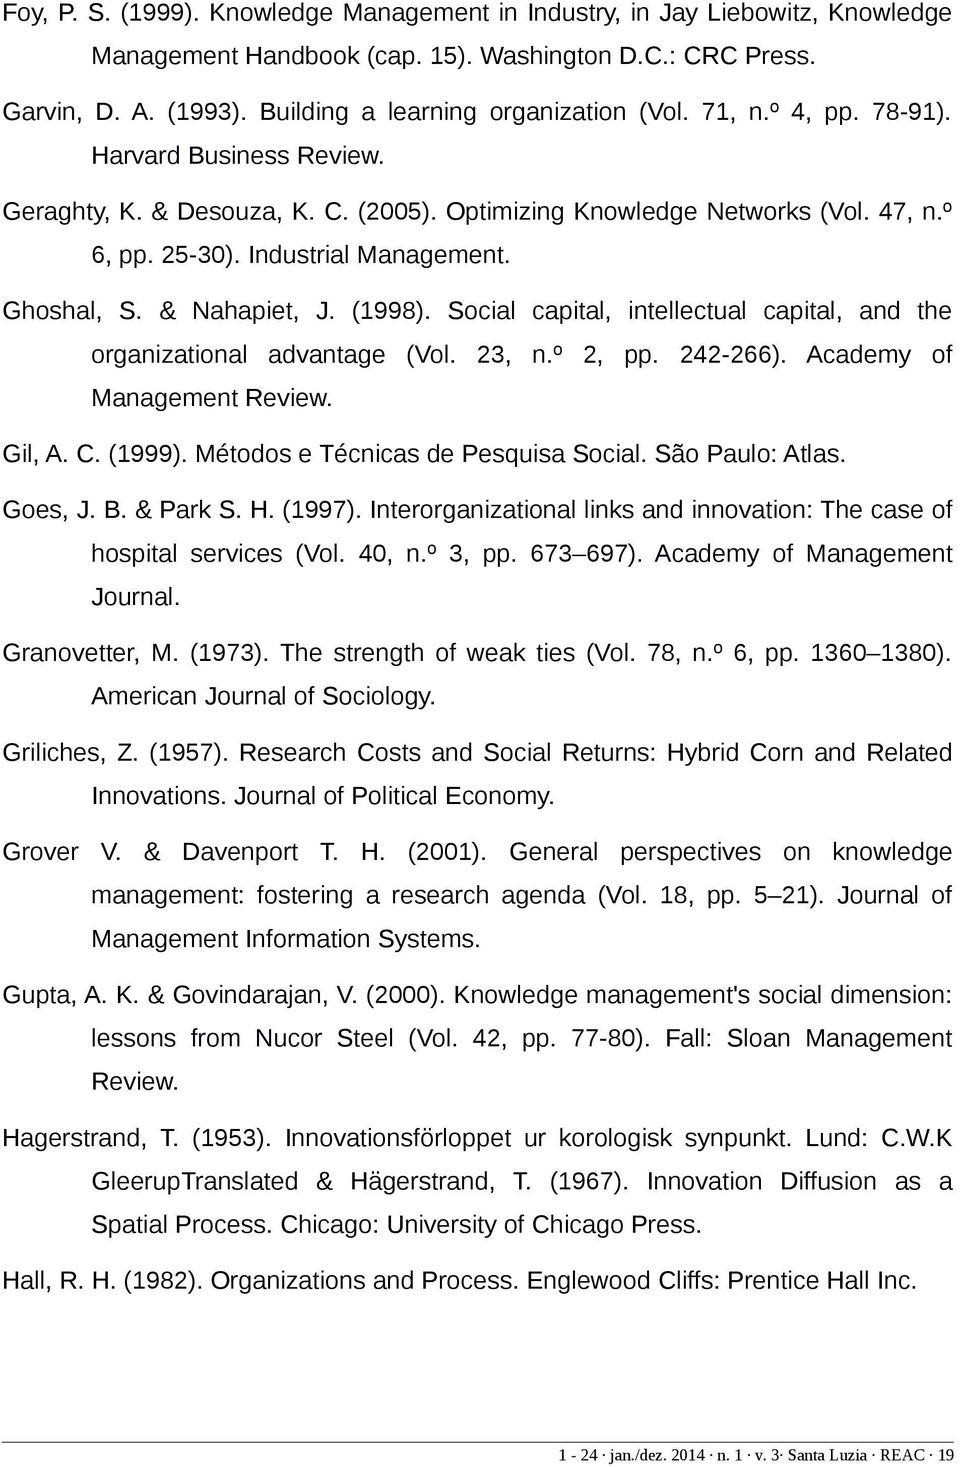 (1998). Social capital, intellectual capital, and the organizational advantage (Vol. 23, n.º 2, pp. 242-266). Academy of Management Review. Gil, A. C. (1999). Métodos e Técnicas de Pesquisa Social.